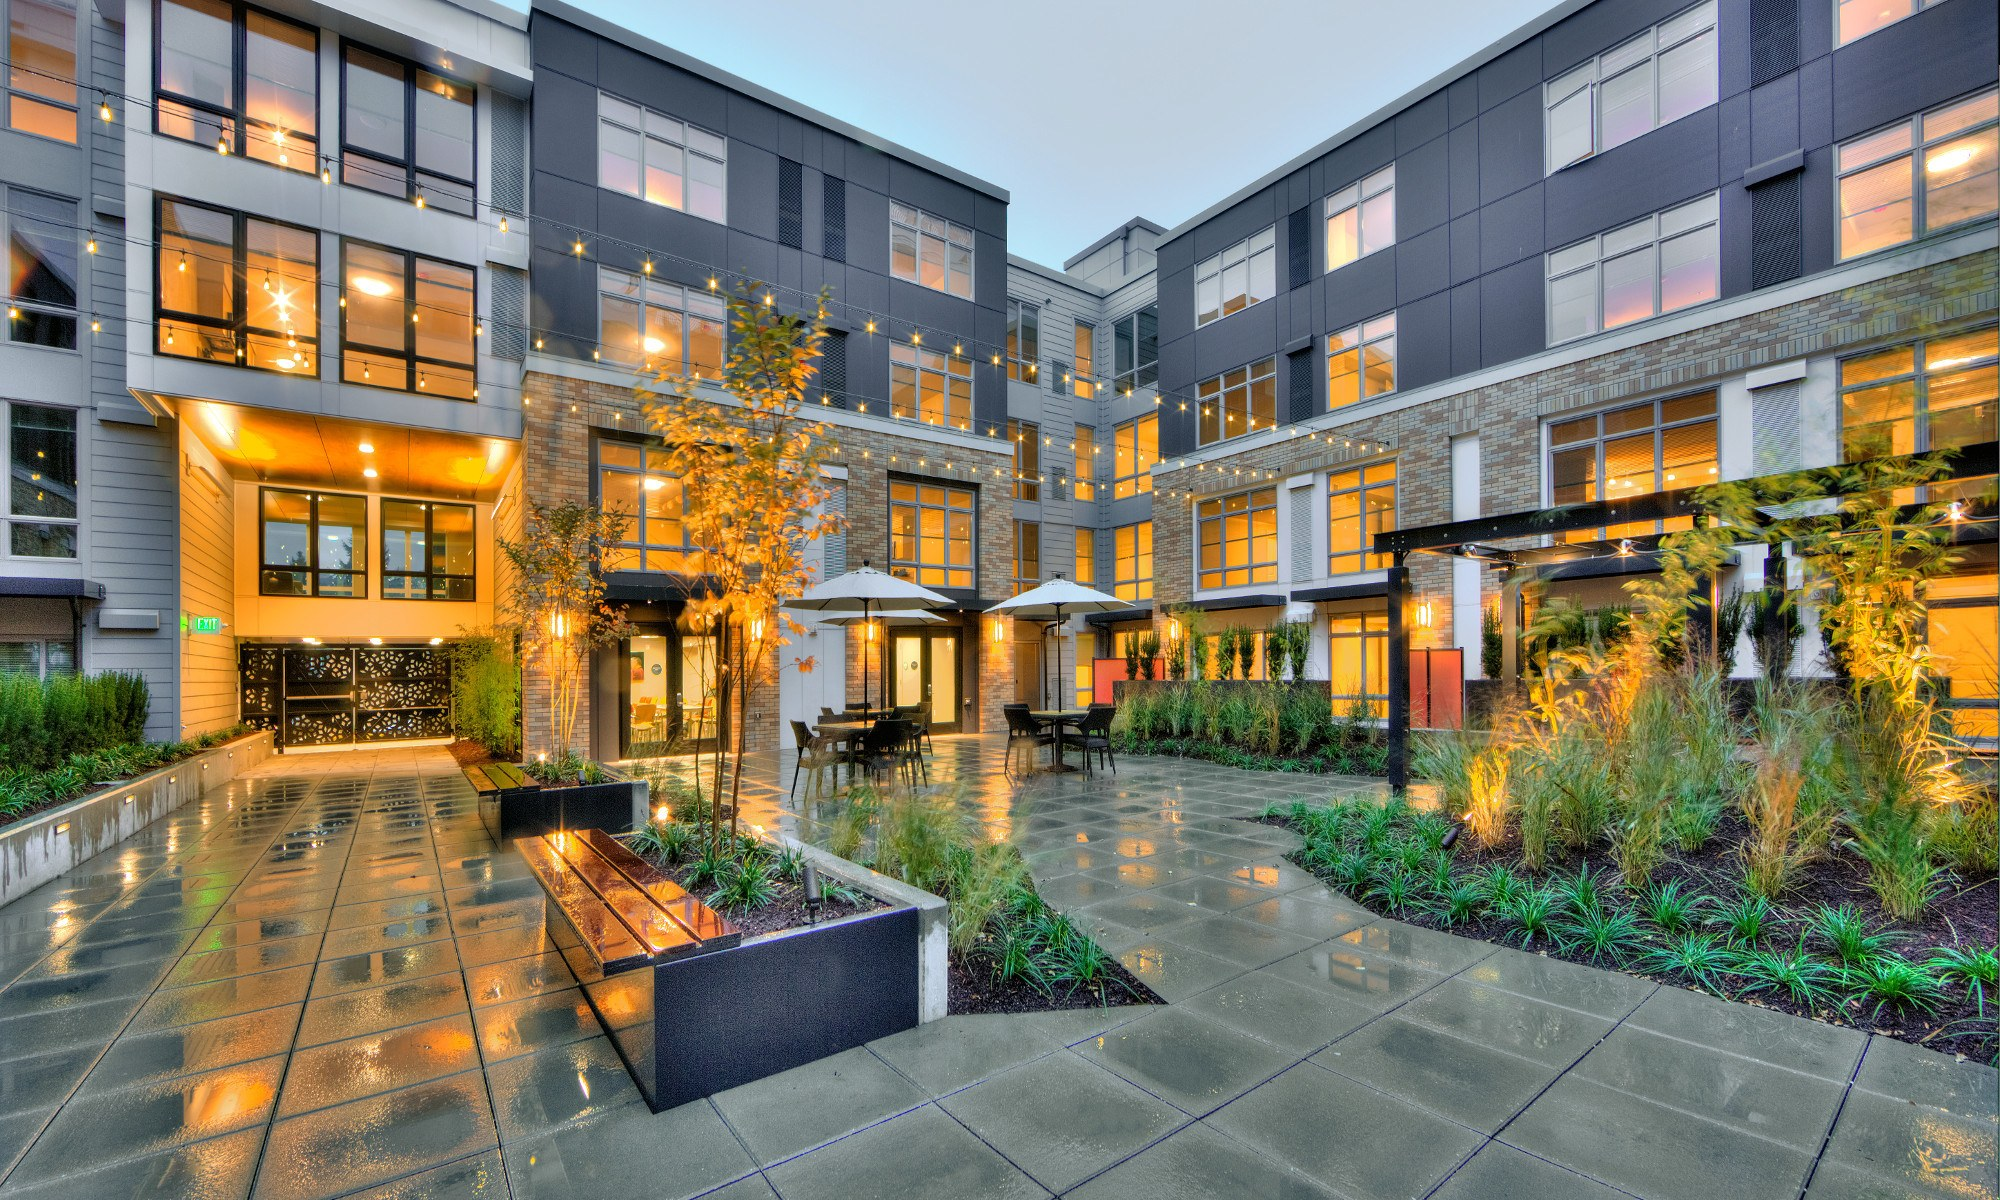 1 Bedroom Apartments College Station Capitol Hill Seattle Wa Apartments For Rent The Lyric